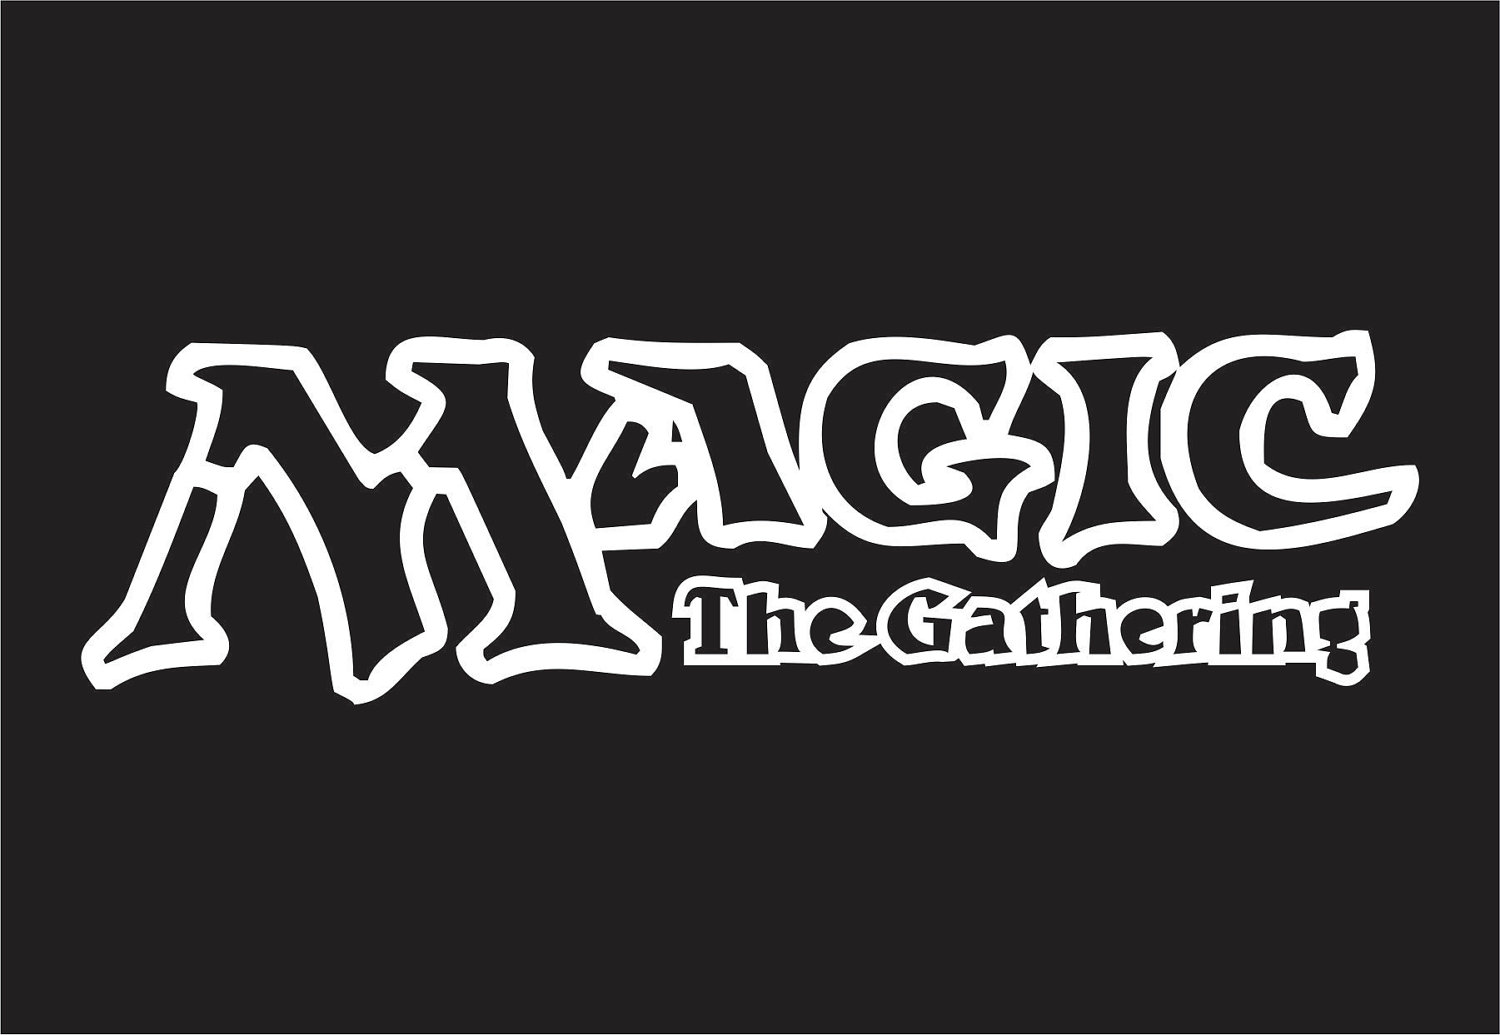 Magic: The Gathering clipart #9, Download drawings